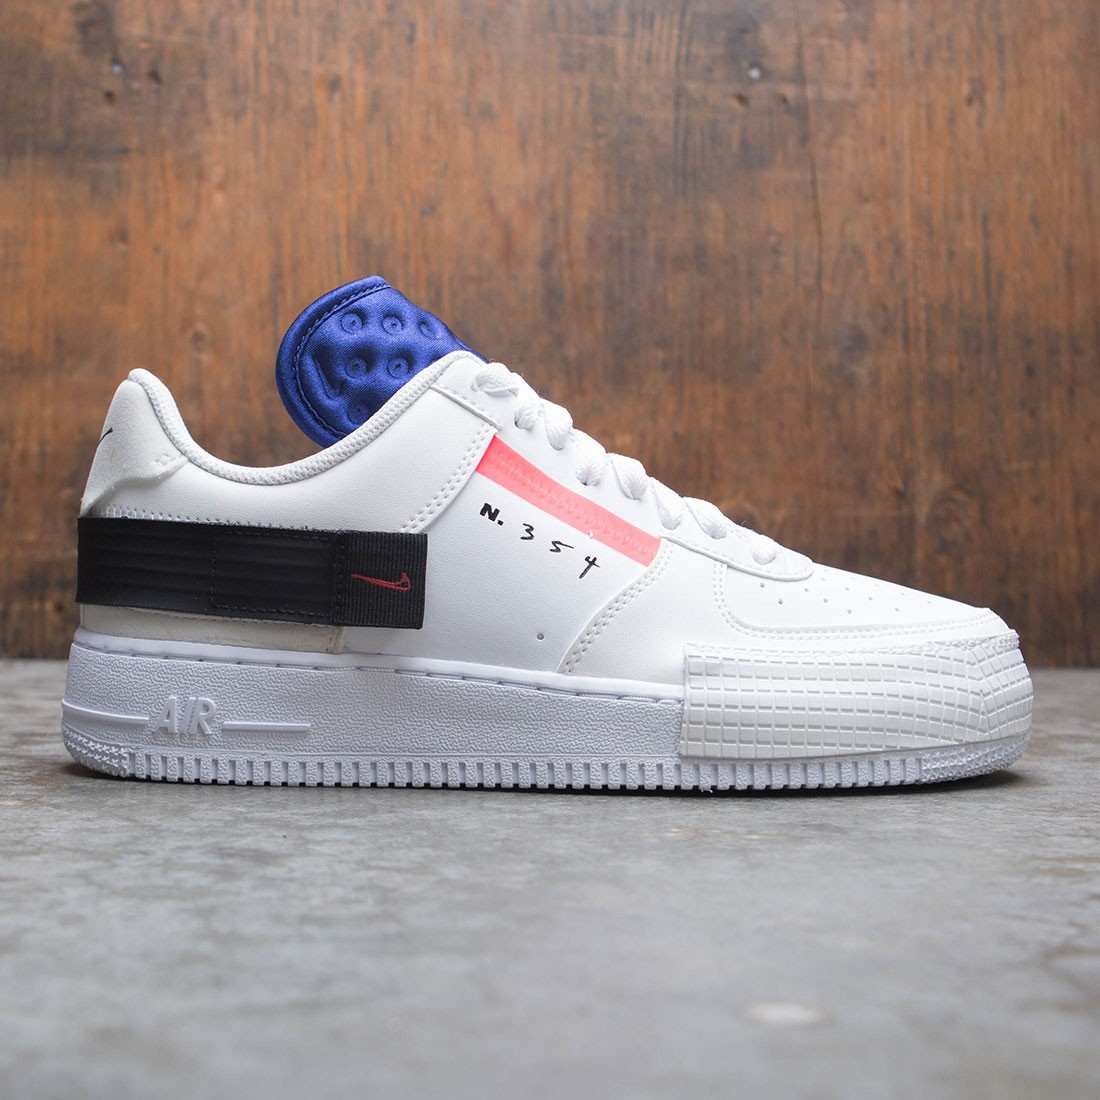 Nike Air Force 1 Type Summit White Red Orbit White Black | Footshop